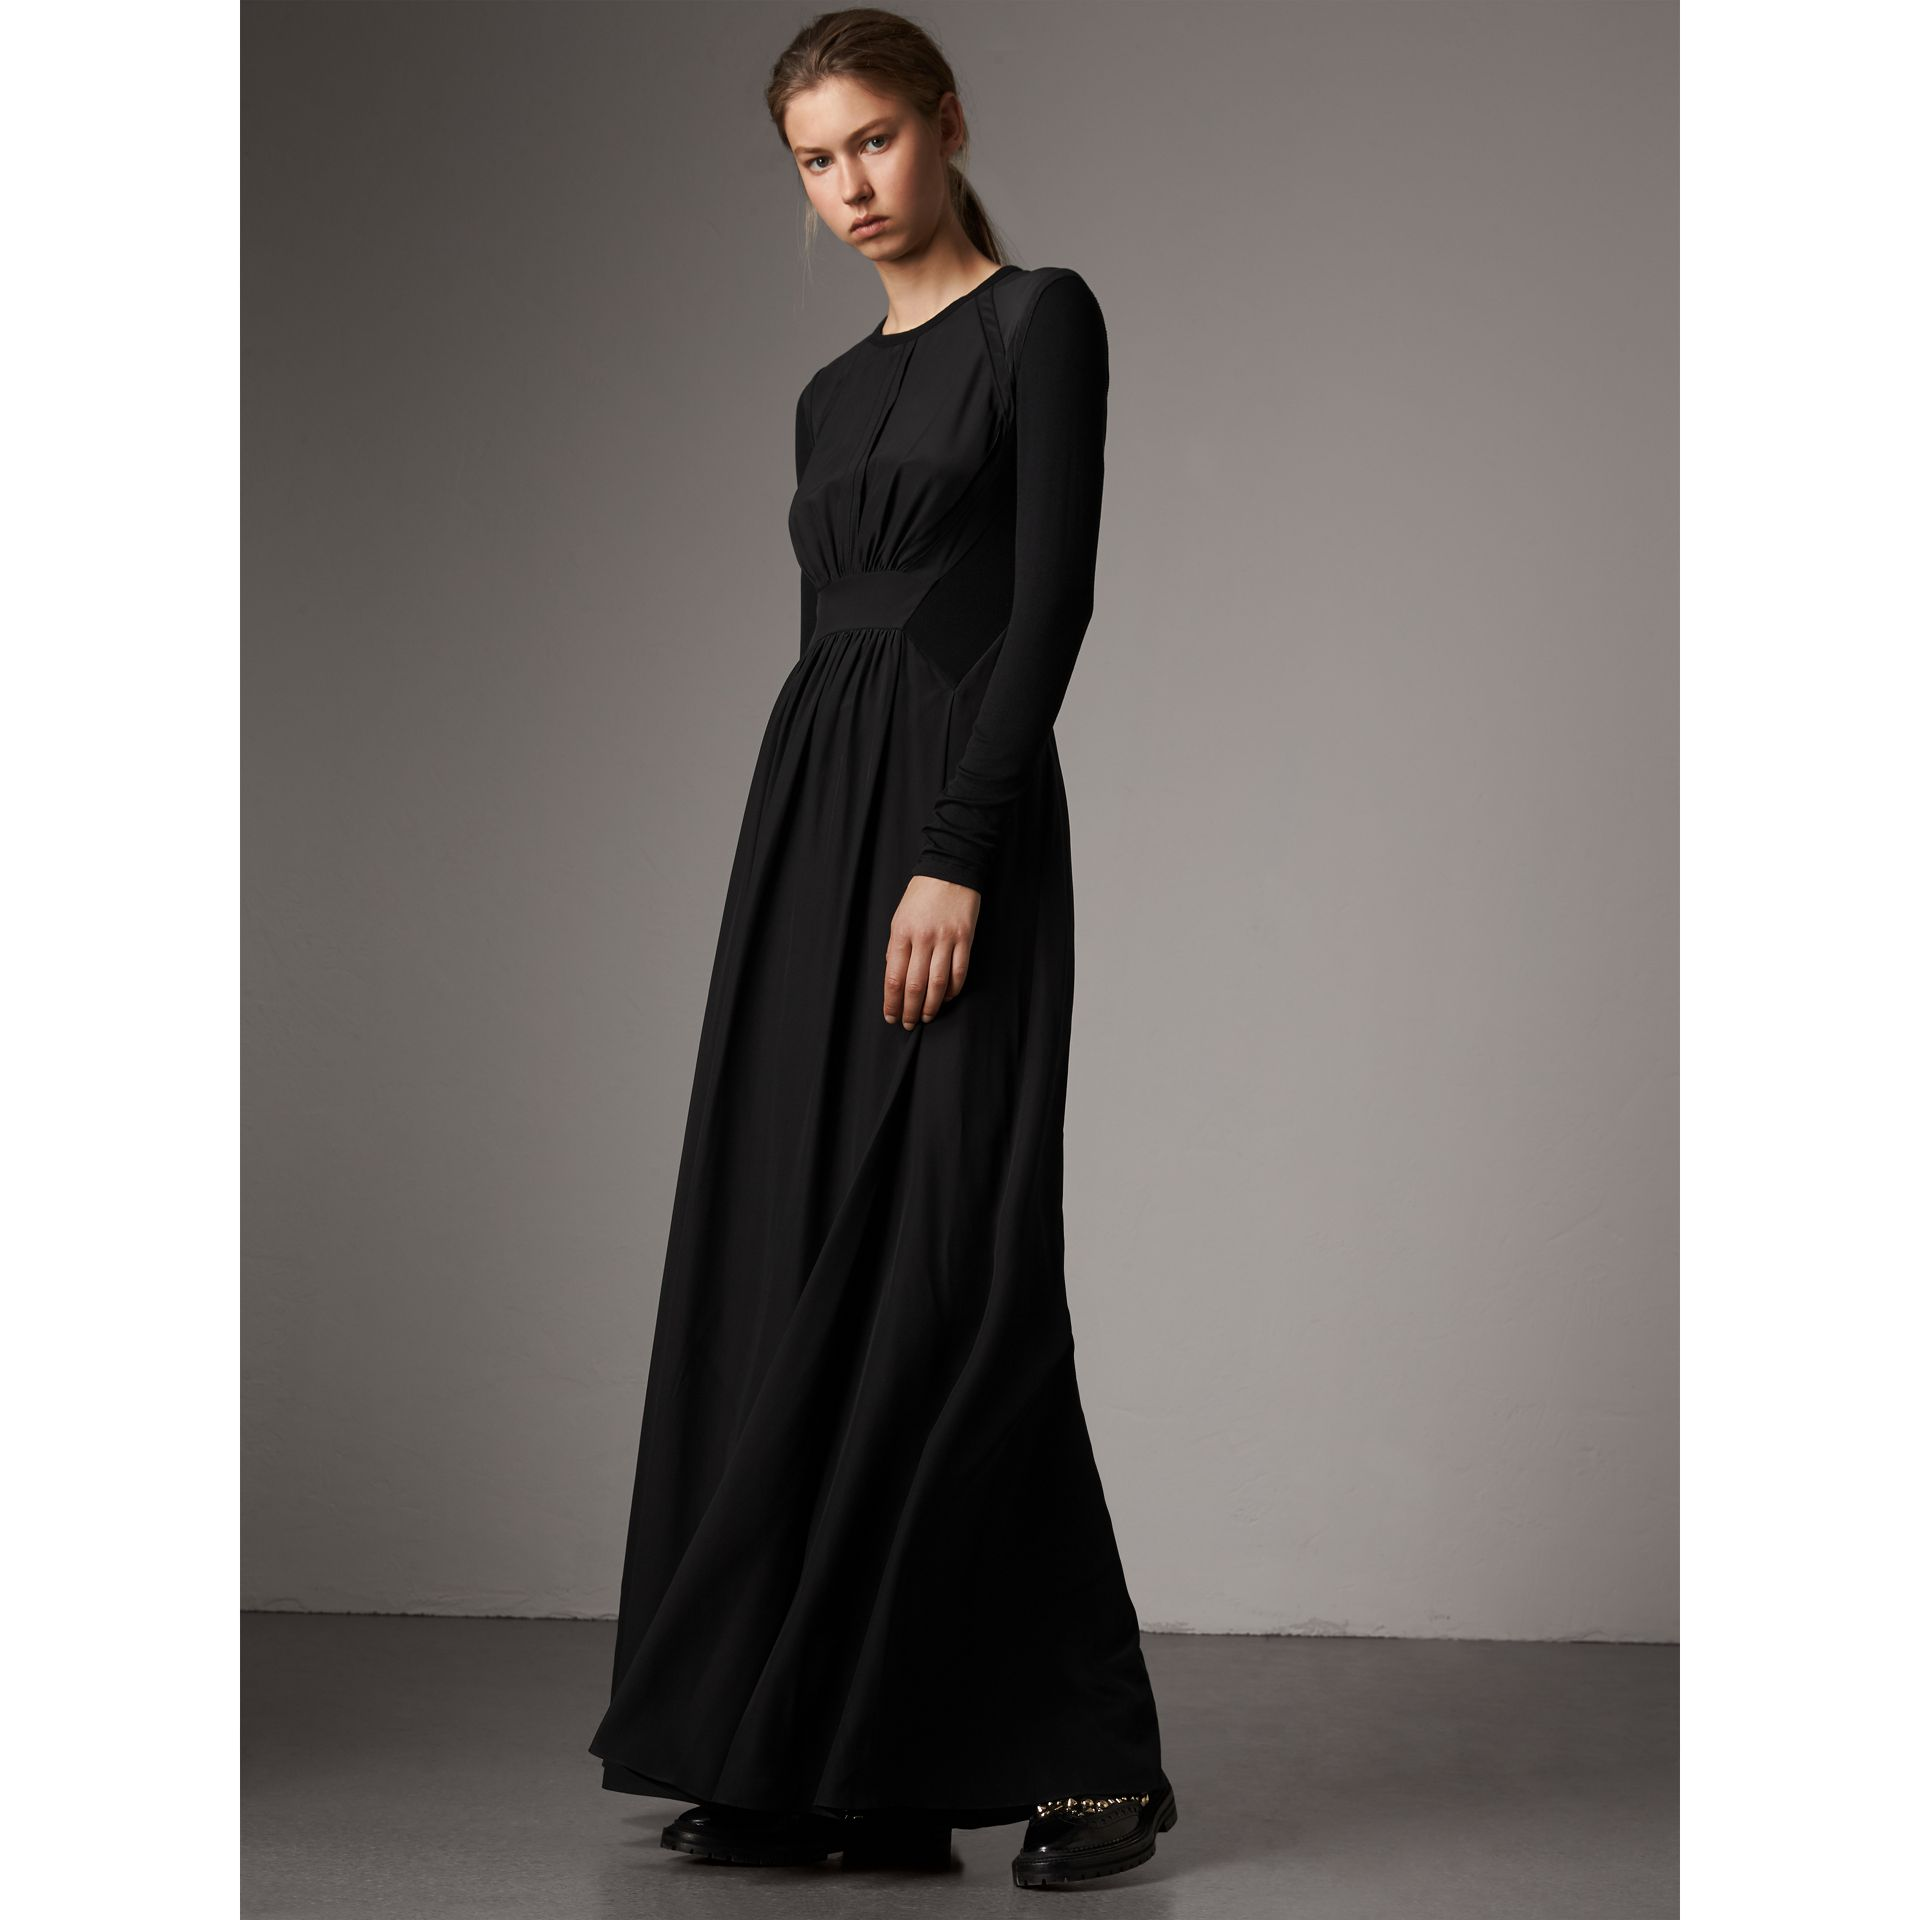 Silk Floor-length Gathered Dress in Black - Women | Burberry Singapore - gallery image 1